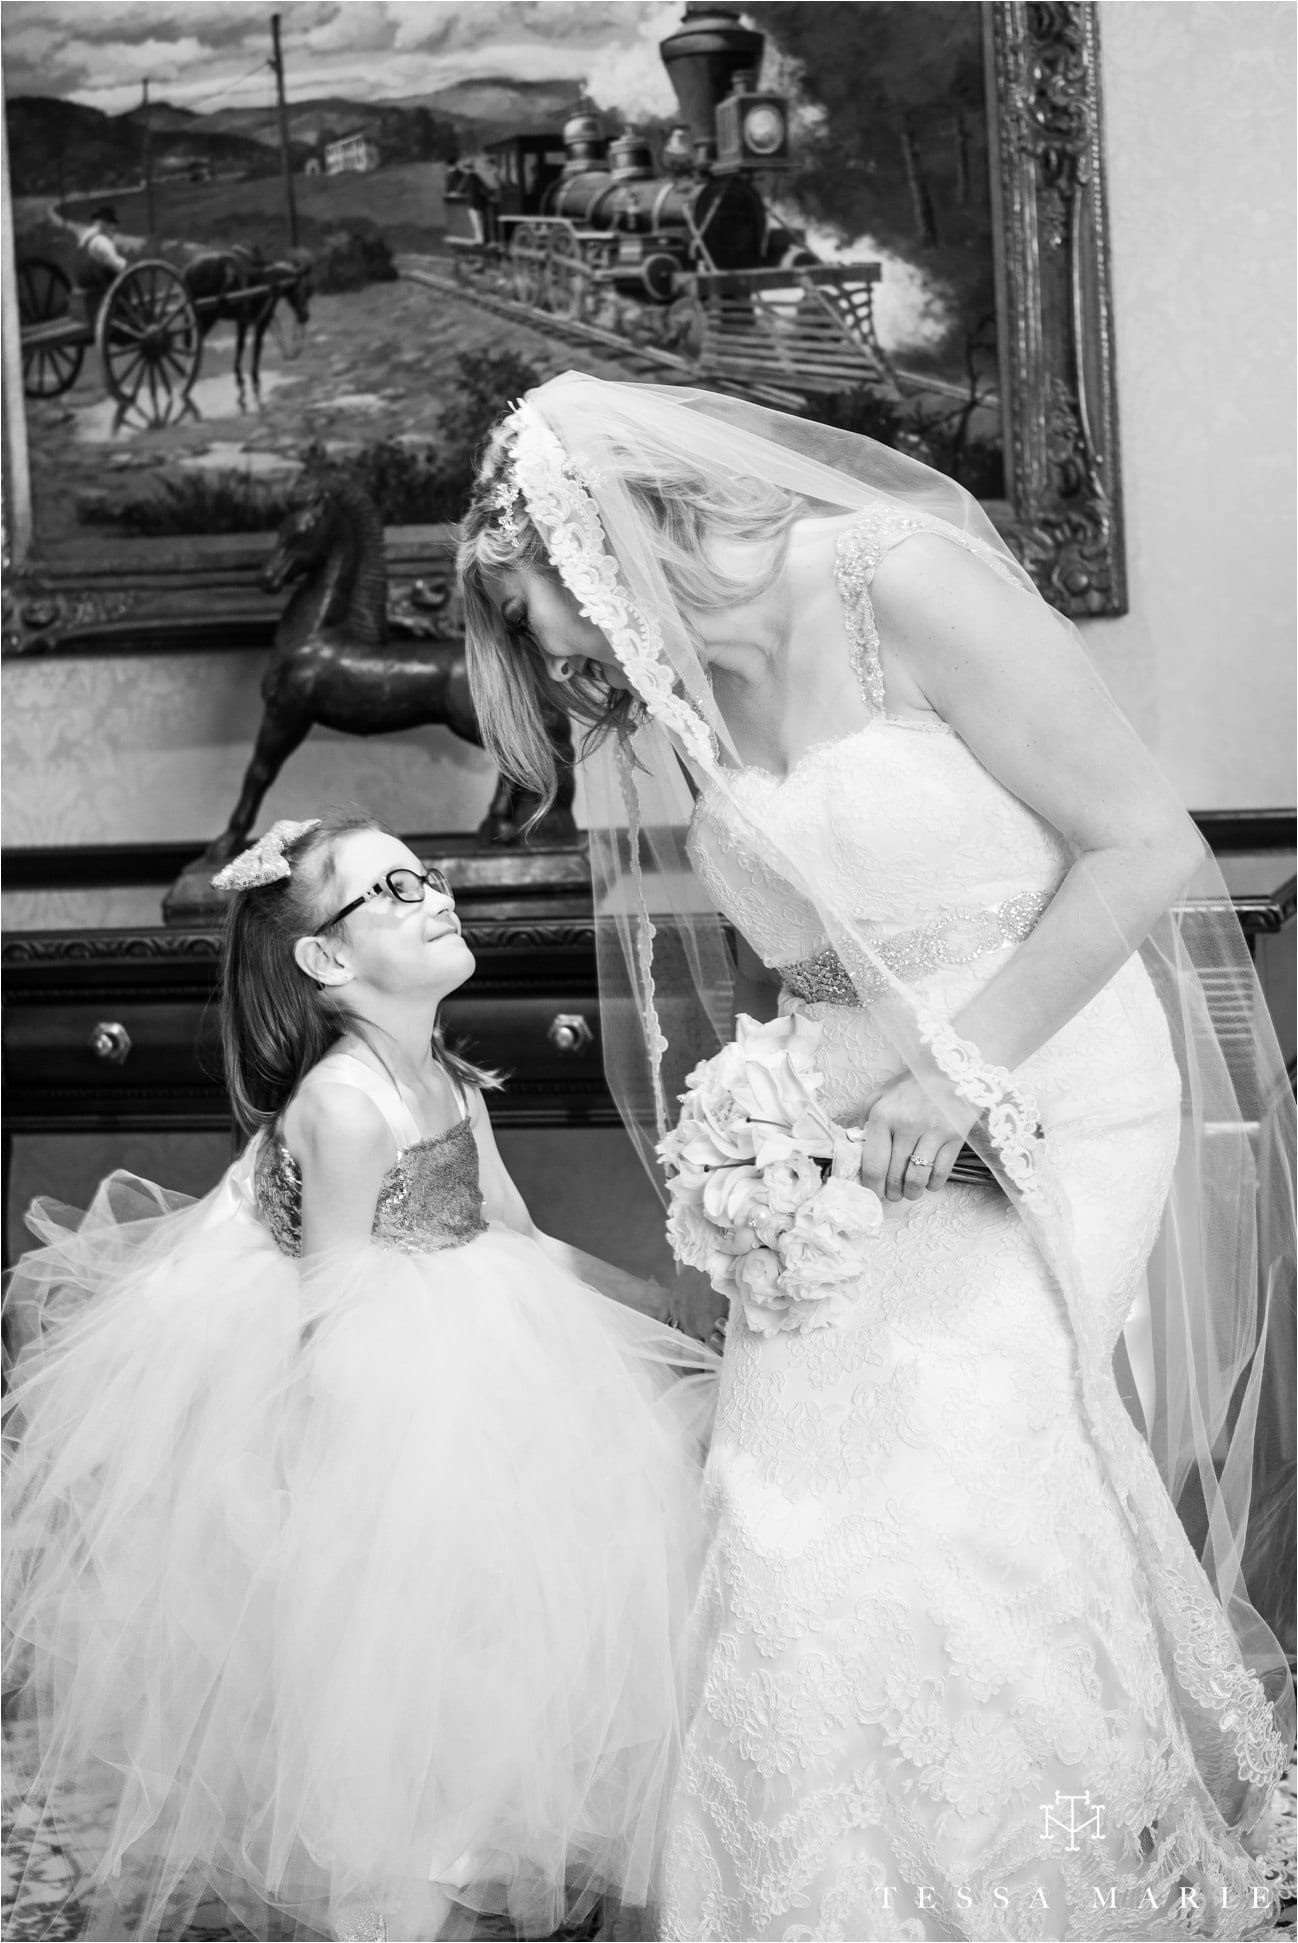 tessa_marie_brickyard_marietta_new_years_wedding_pictures_candid_emotional_wedding_portraits_0069